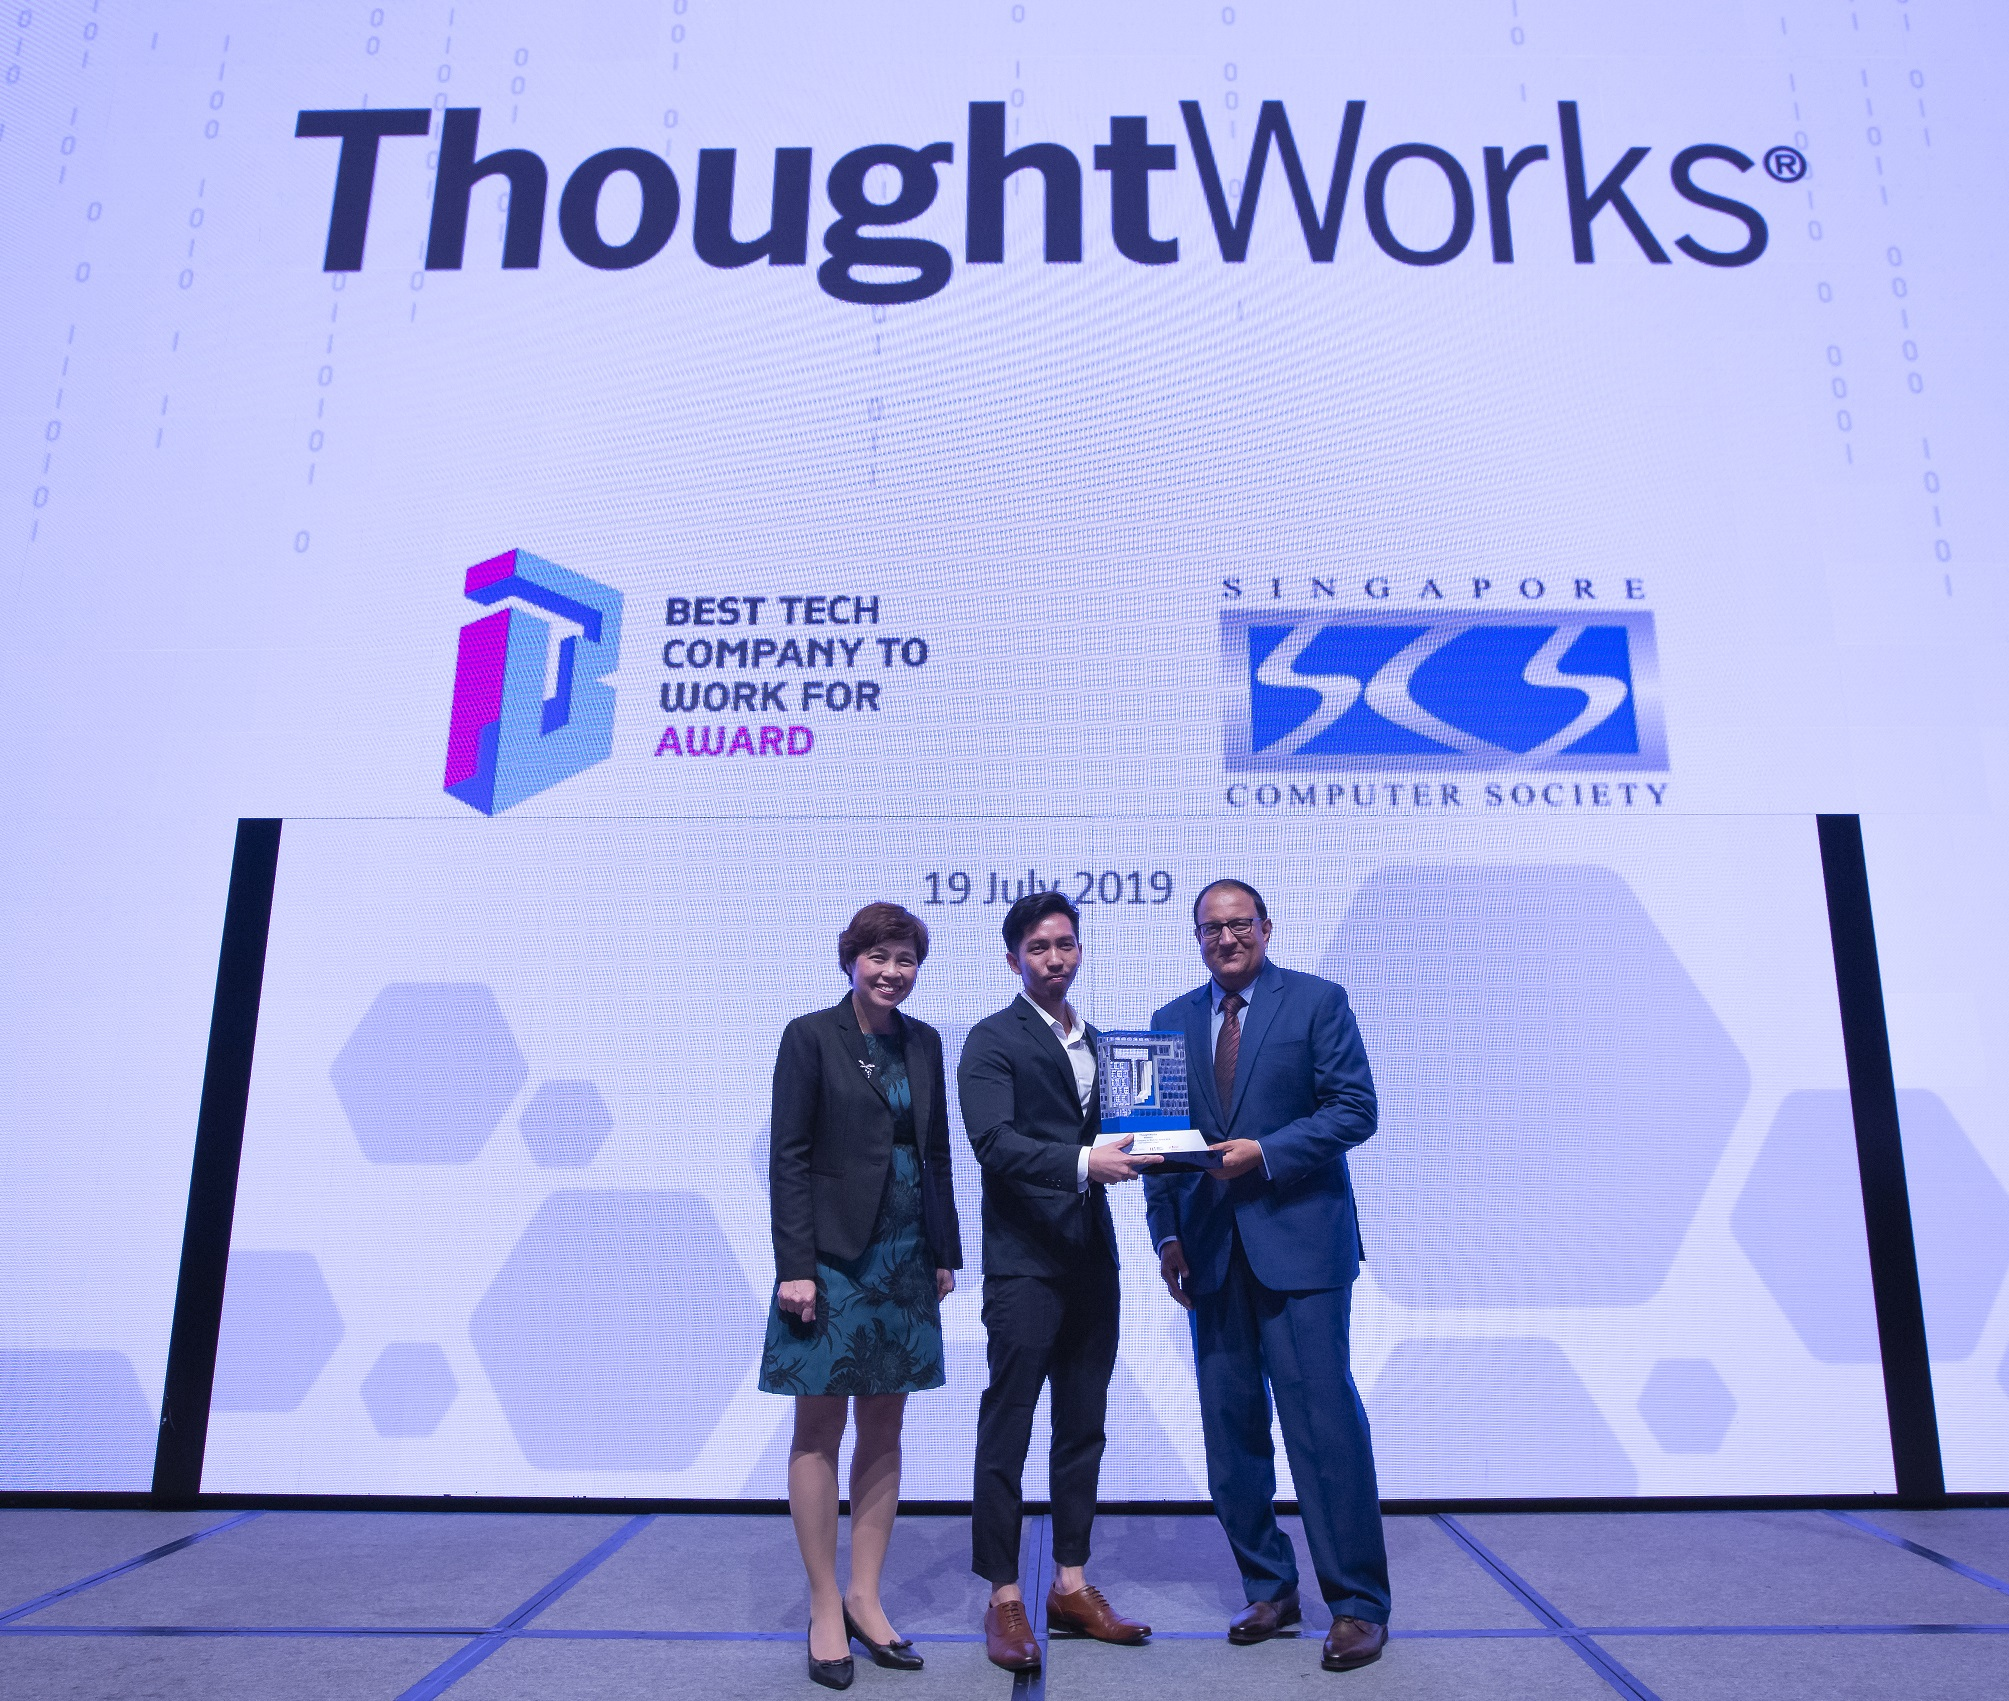 Thought works logo